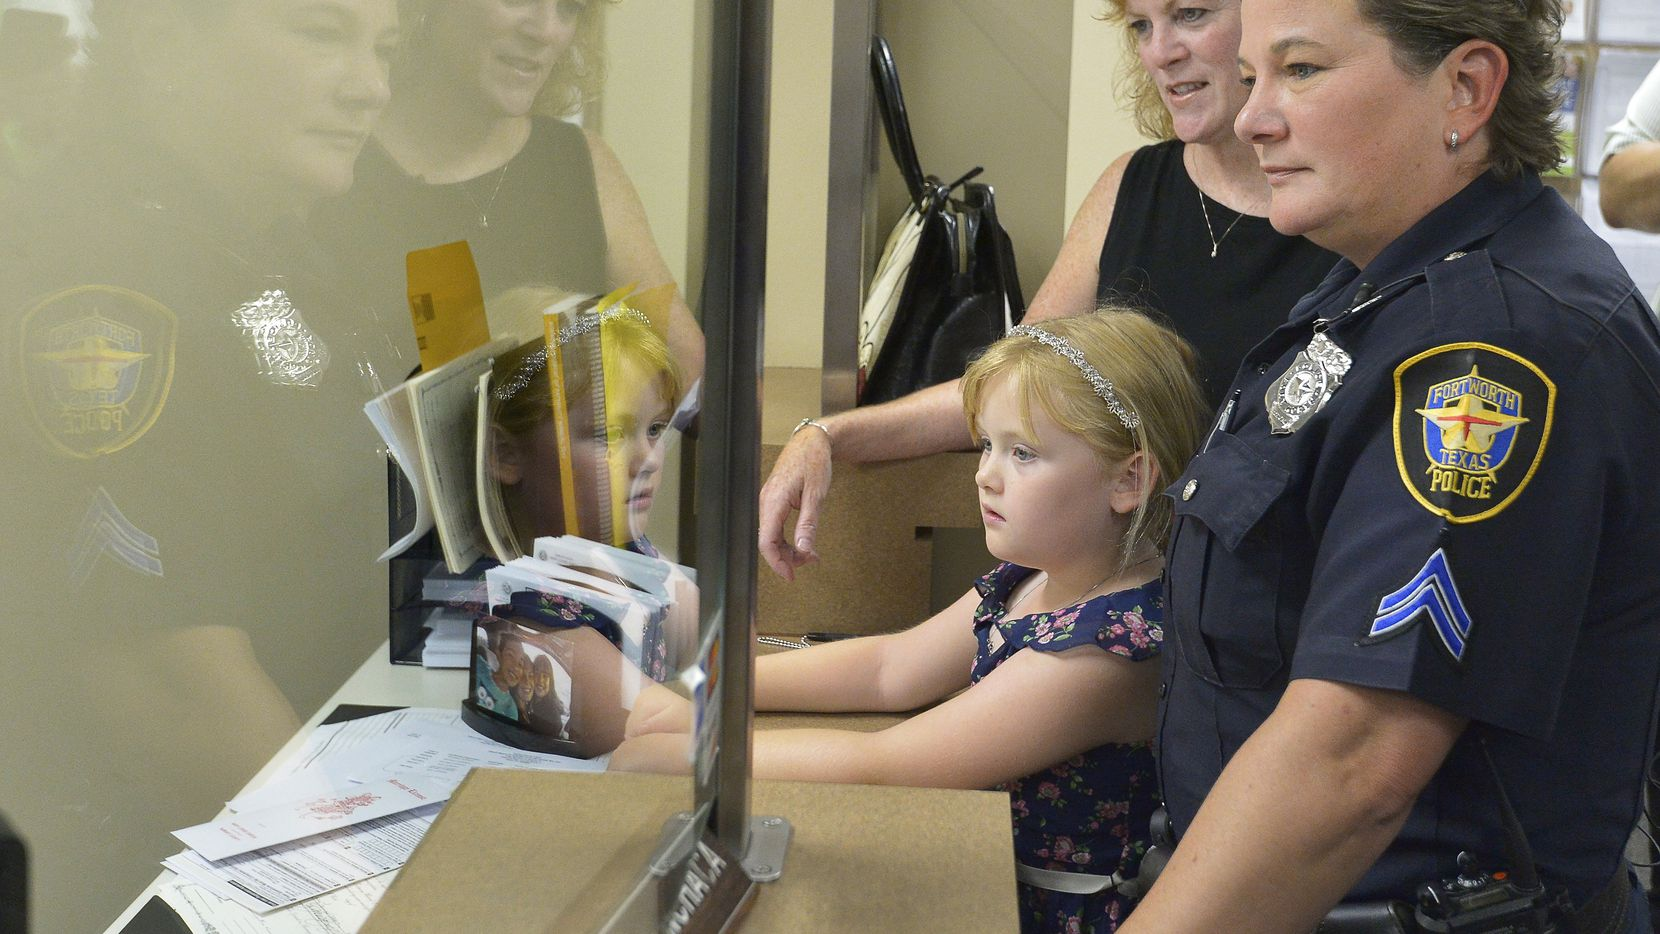 Fort Worth police Cpl. Tracey Knight and Shannon Knight, with their 6-year-old daughter, Evan, were Tarrant County's first gay couple to receive a marriage license after the Supreme Court's ruling June 26.